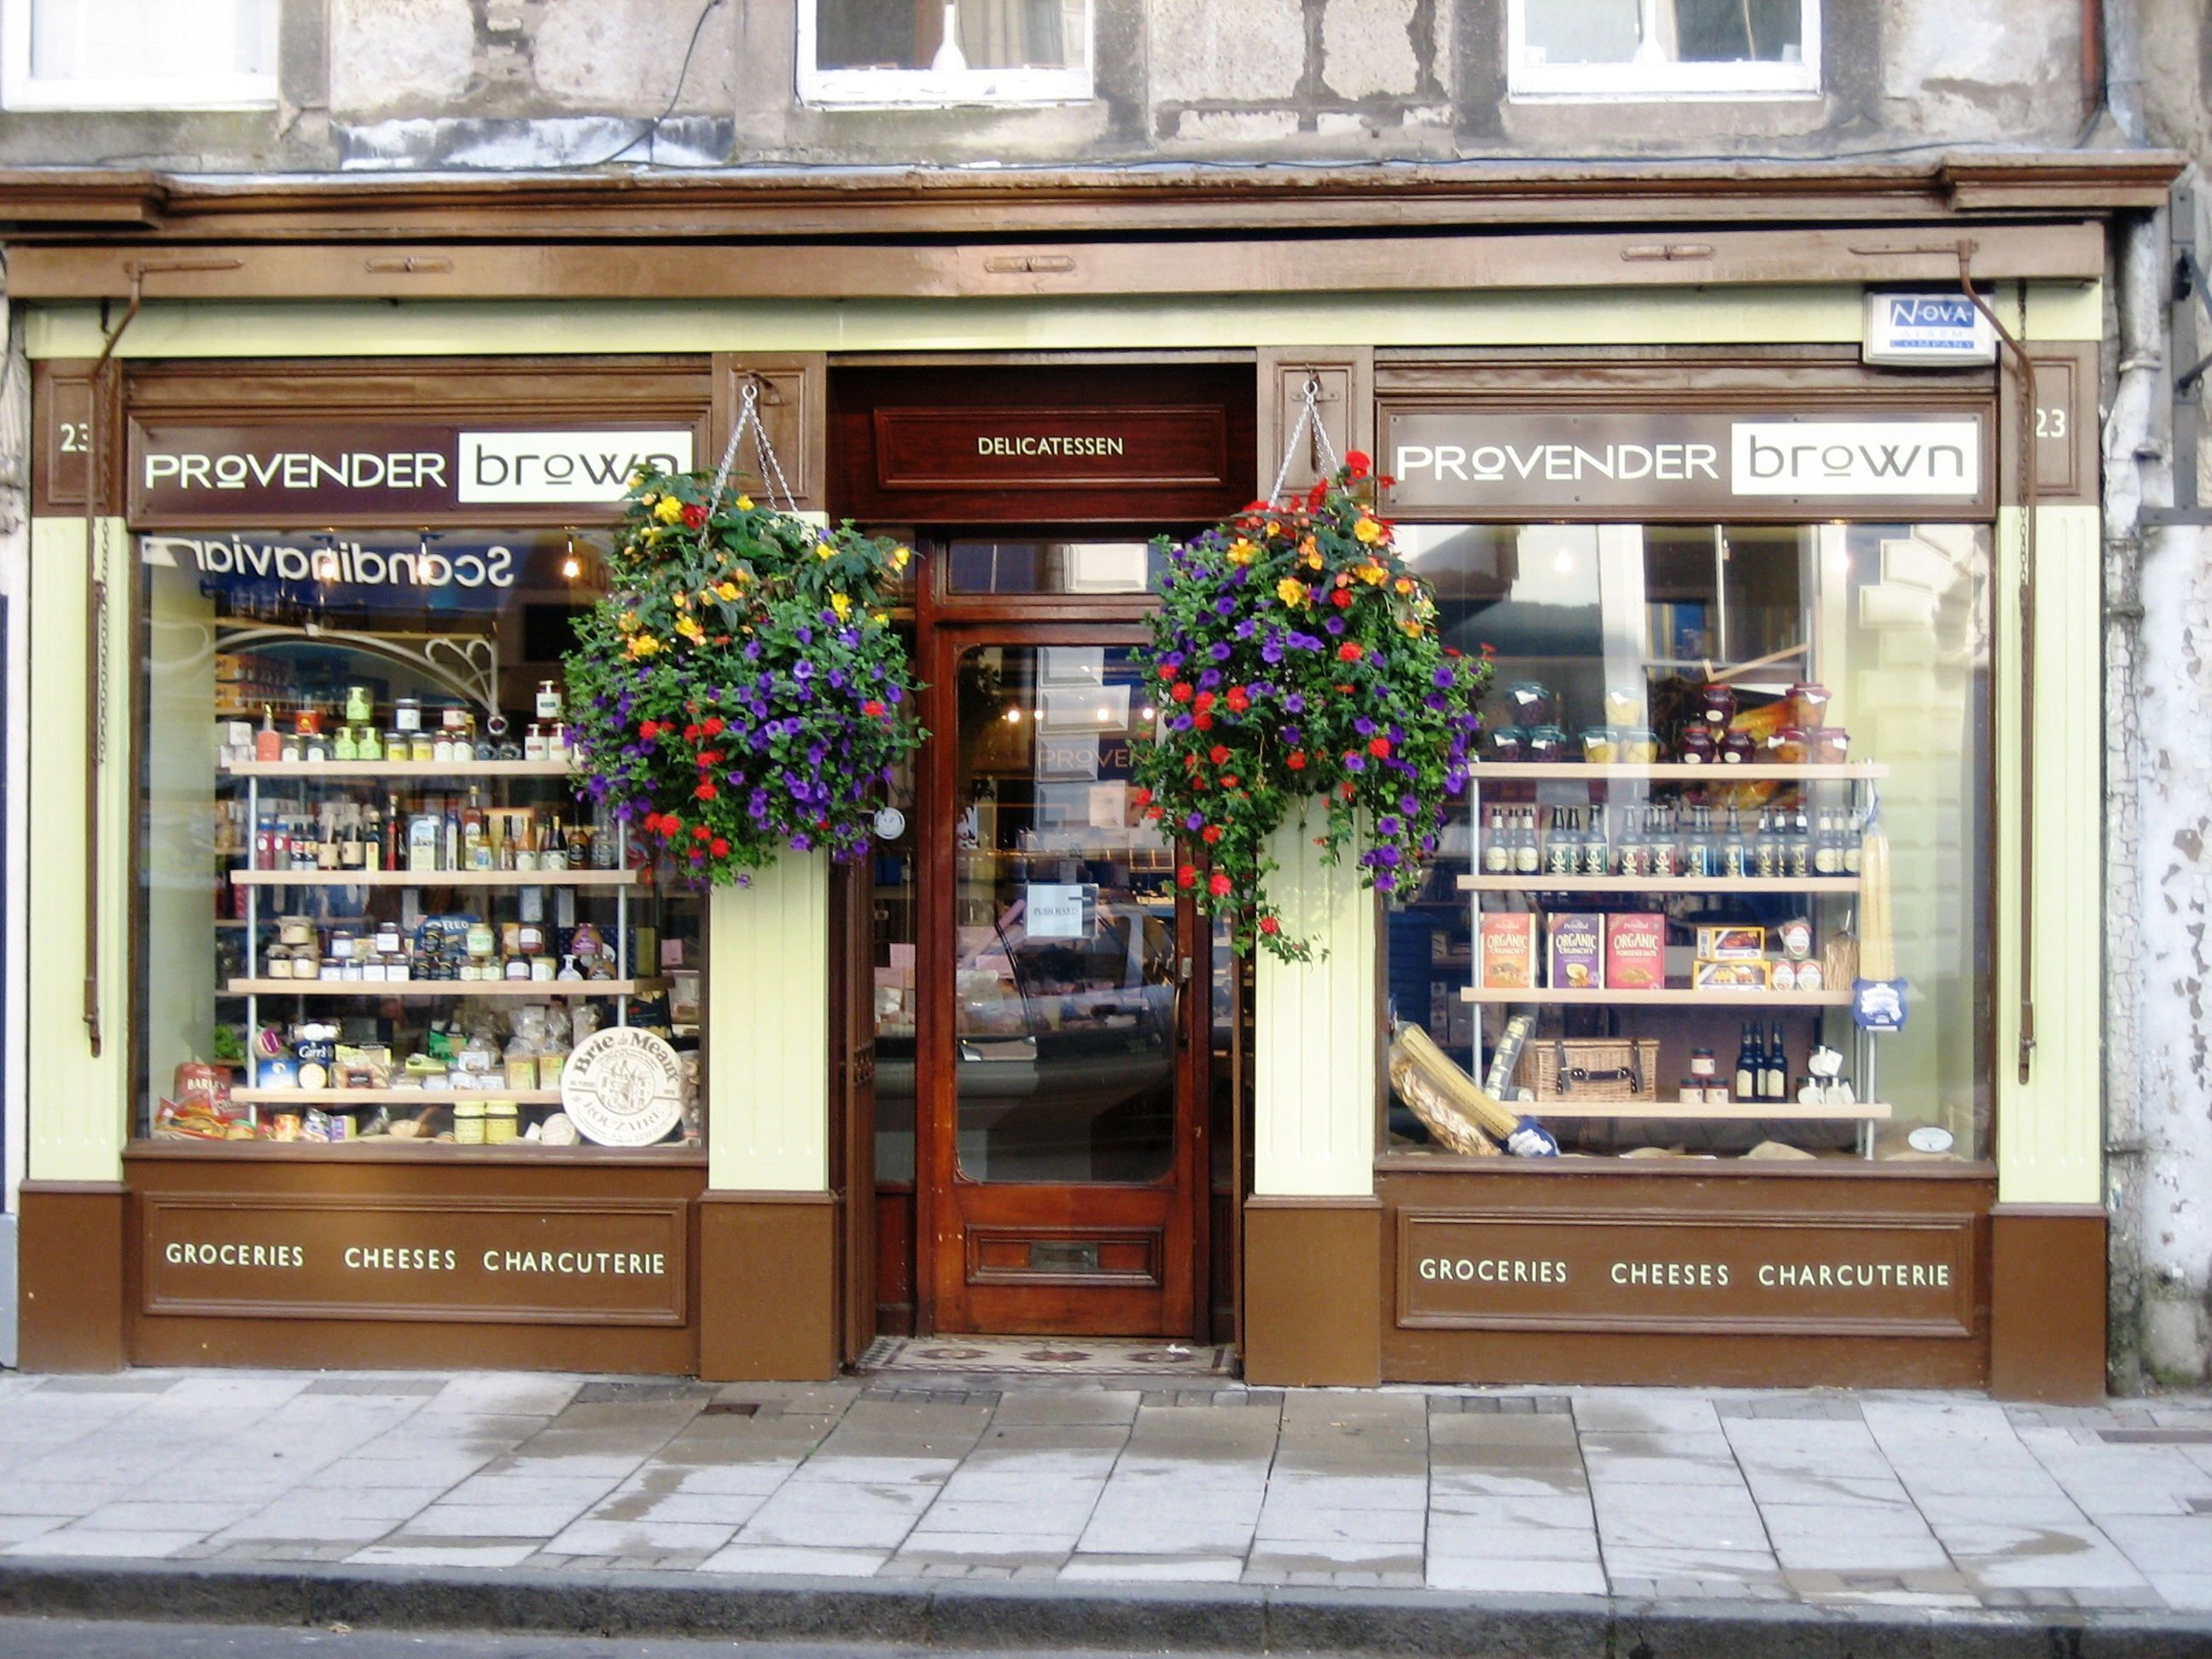 A wonderful gourmet deli tucked away on a quiet street in